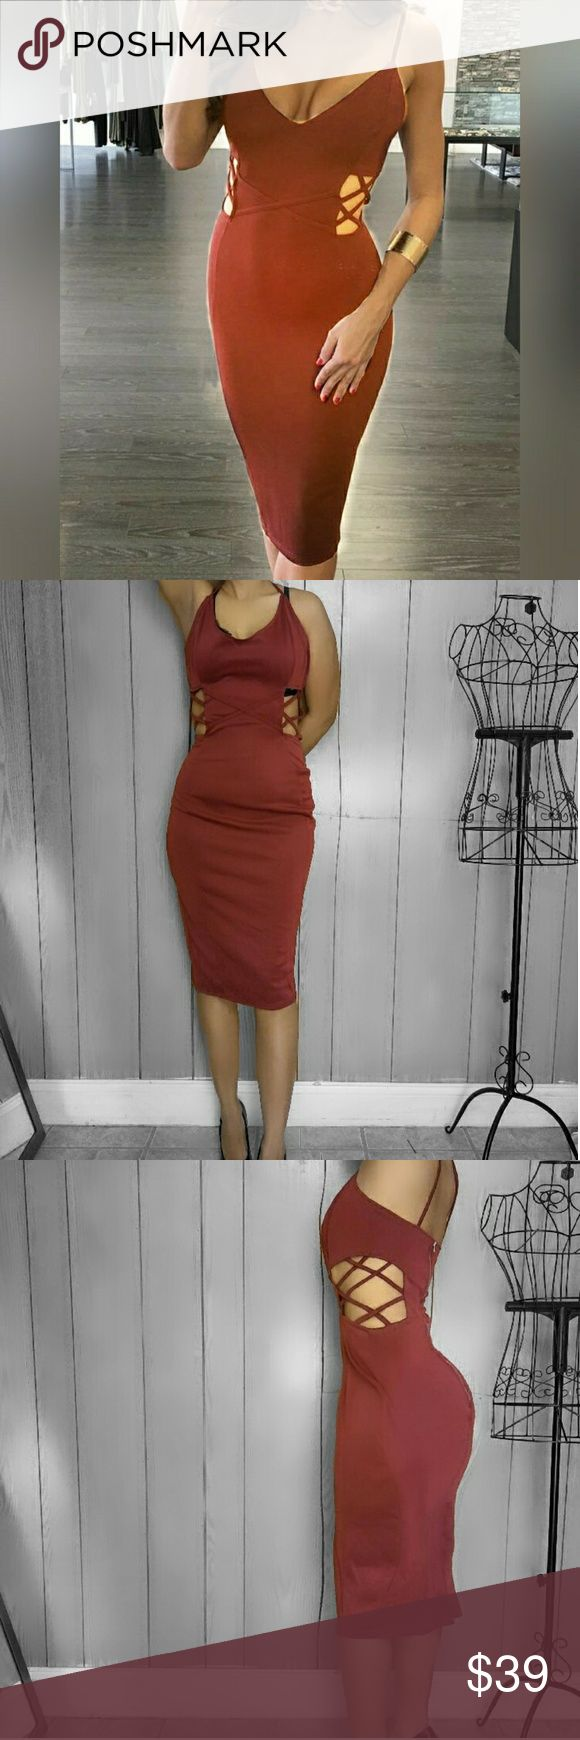 "Date Me"" Criss-Cross Hollow Out Back Slit Red Midi NEW!  This body-conscious zipper back midi dress is the perfect go to dress for Date Night or even girls night out. Hugs and flatters your curves in all the right places with stretchy material.  Spaghetti straps and exposed zipper on the back.  Sexy cutouts with crisscross details adds that extra flare and uniqueness to this already amazing fitted dress.  Modeling with clips ! Large fits big on me! Dresses Midi"